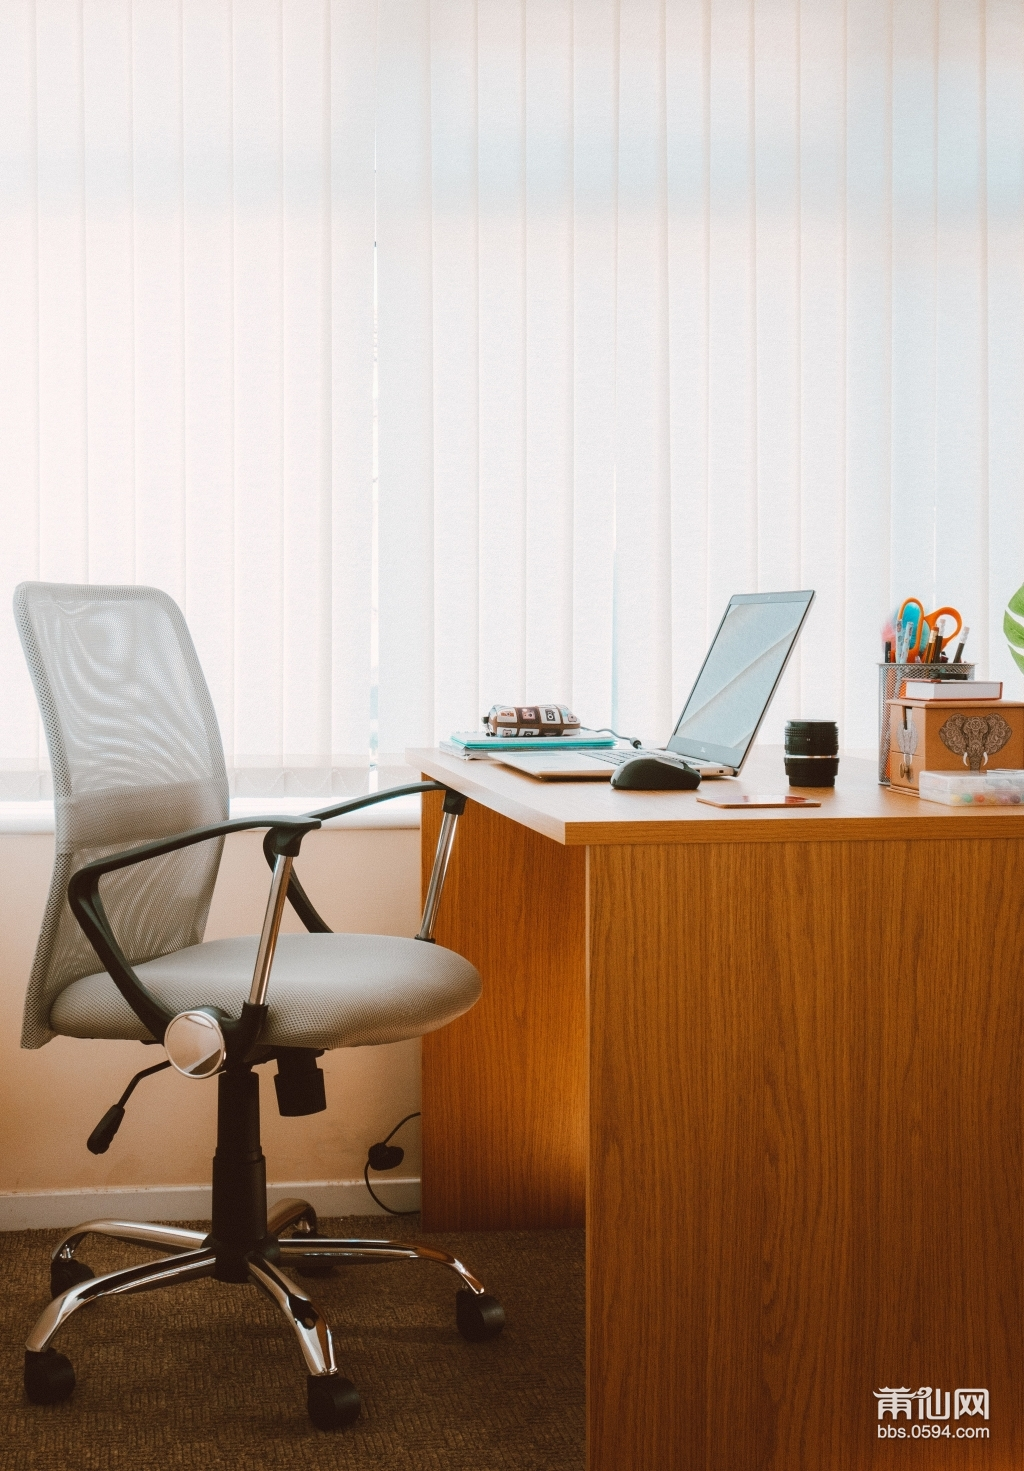 office-chair-and-desk-1957477.jpg